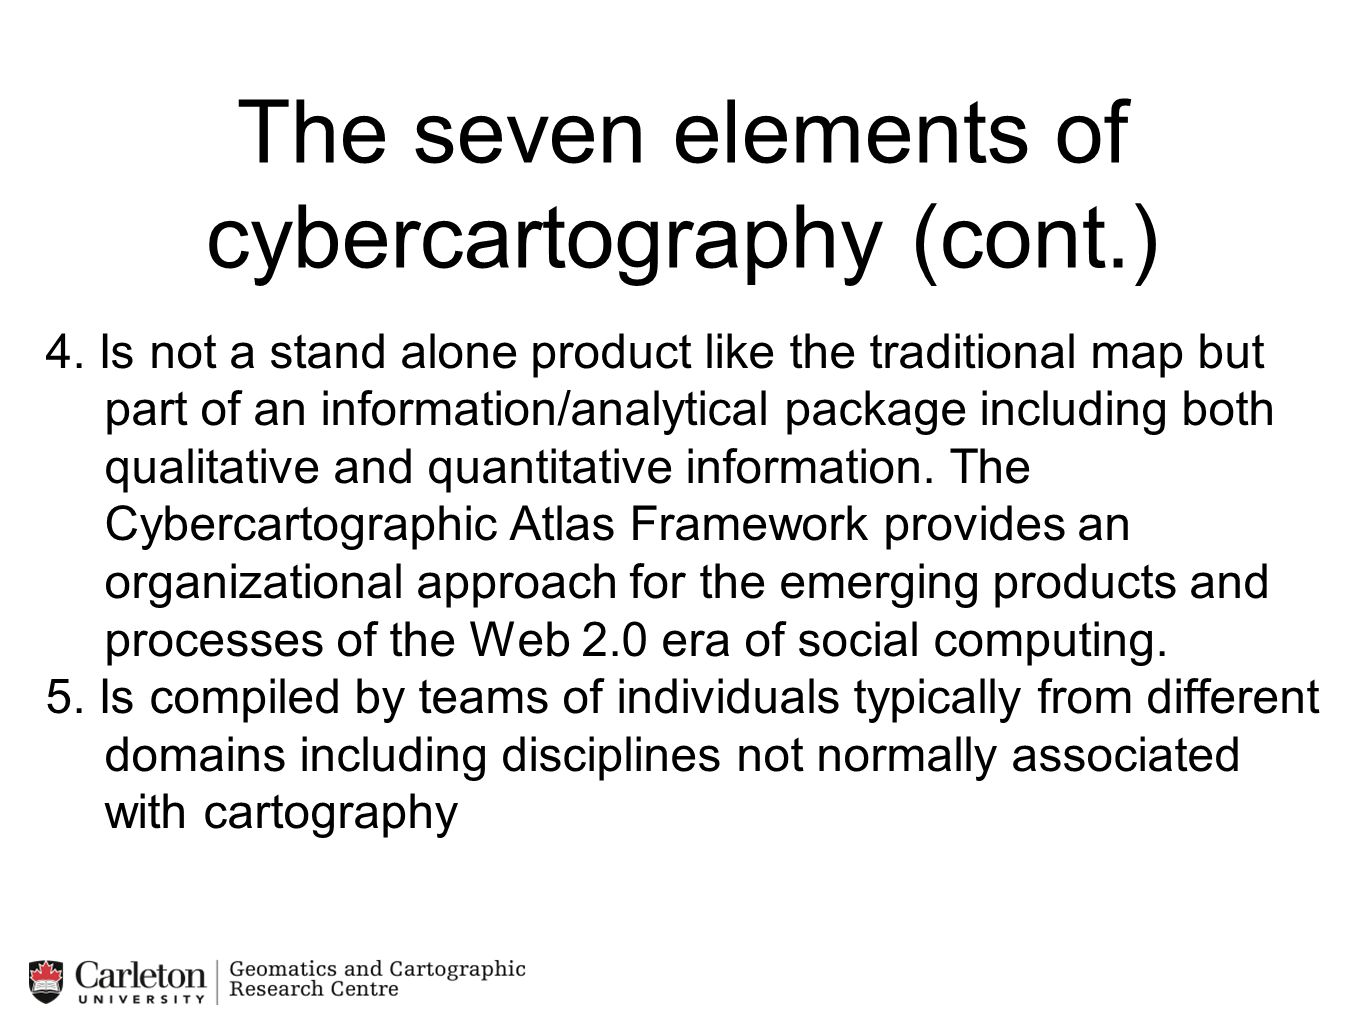 The seven elements of cybercartography (cont.) 4. Is not a stand alone product like the traditional map but part of an information/analytical package